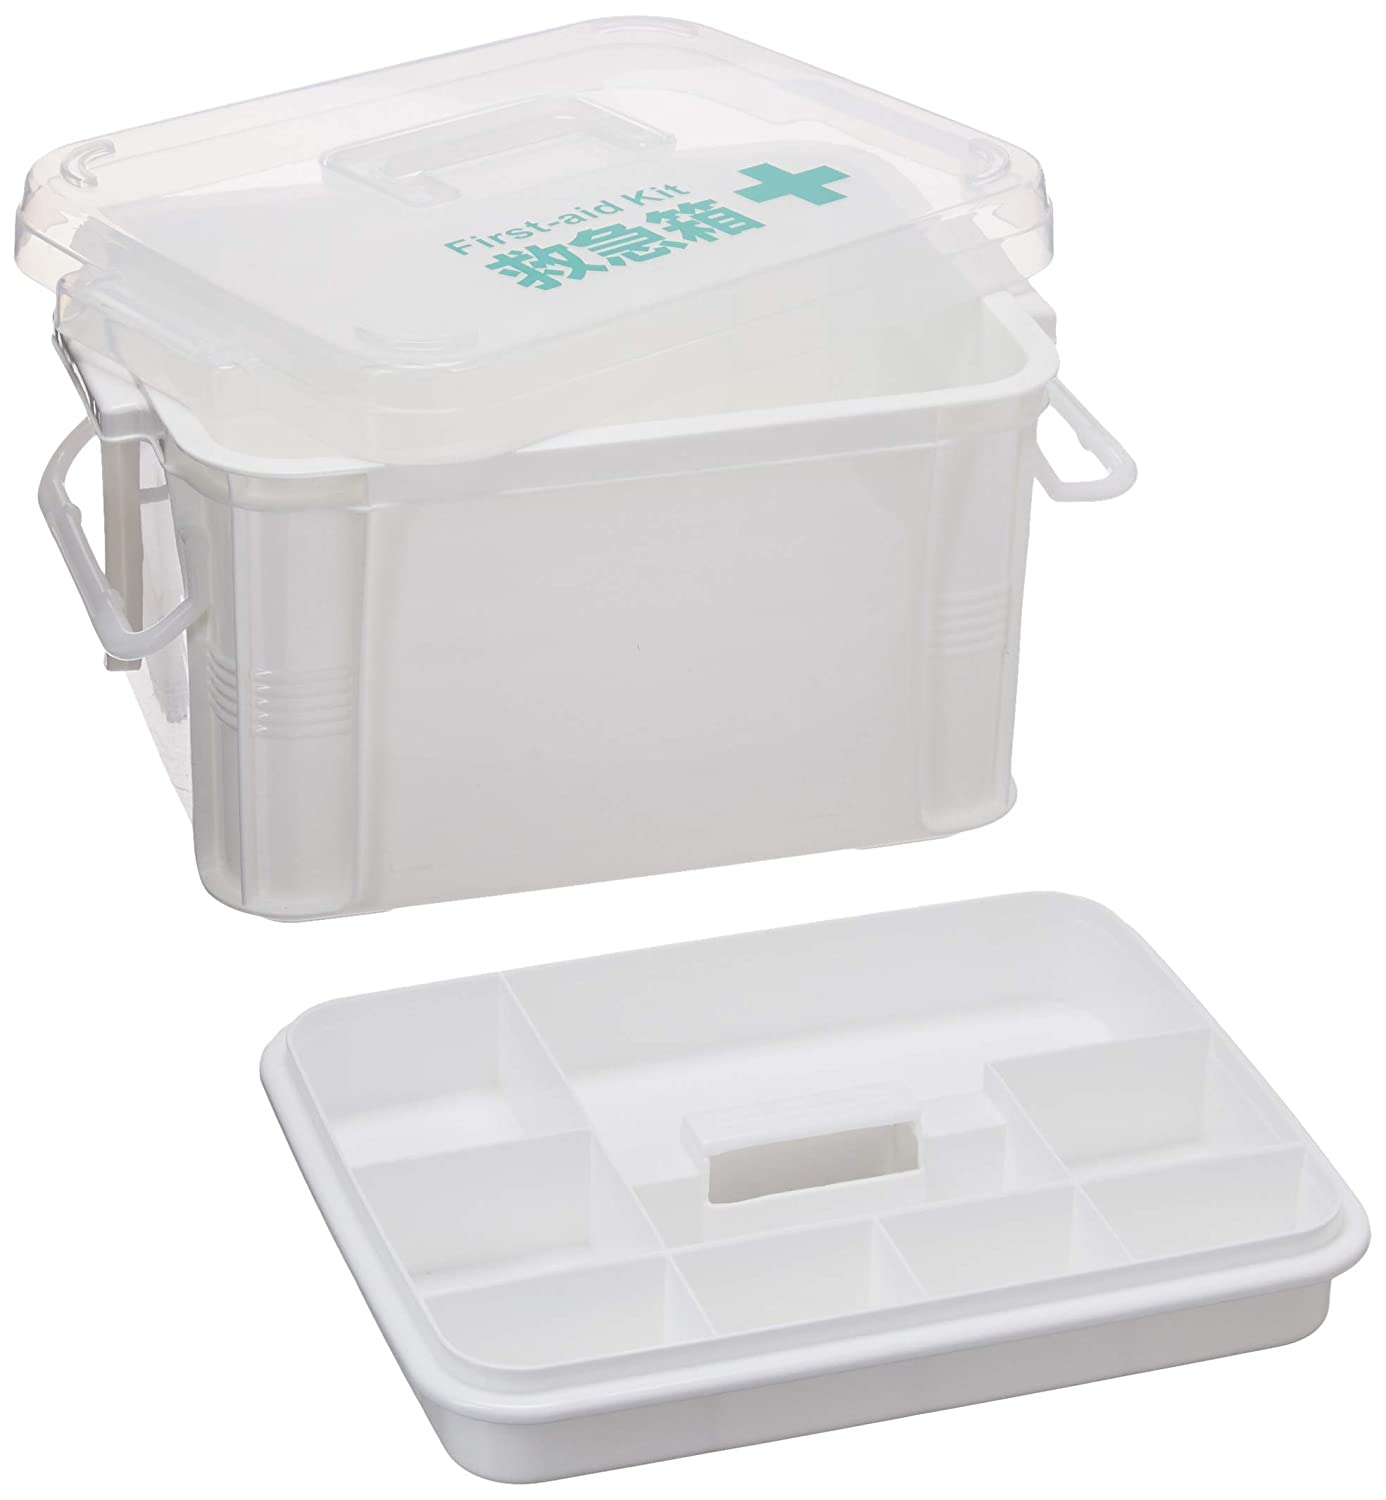 FaSoLa Dual-Layer Polypropylene Medicine Storage Case Box White, L